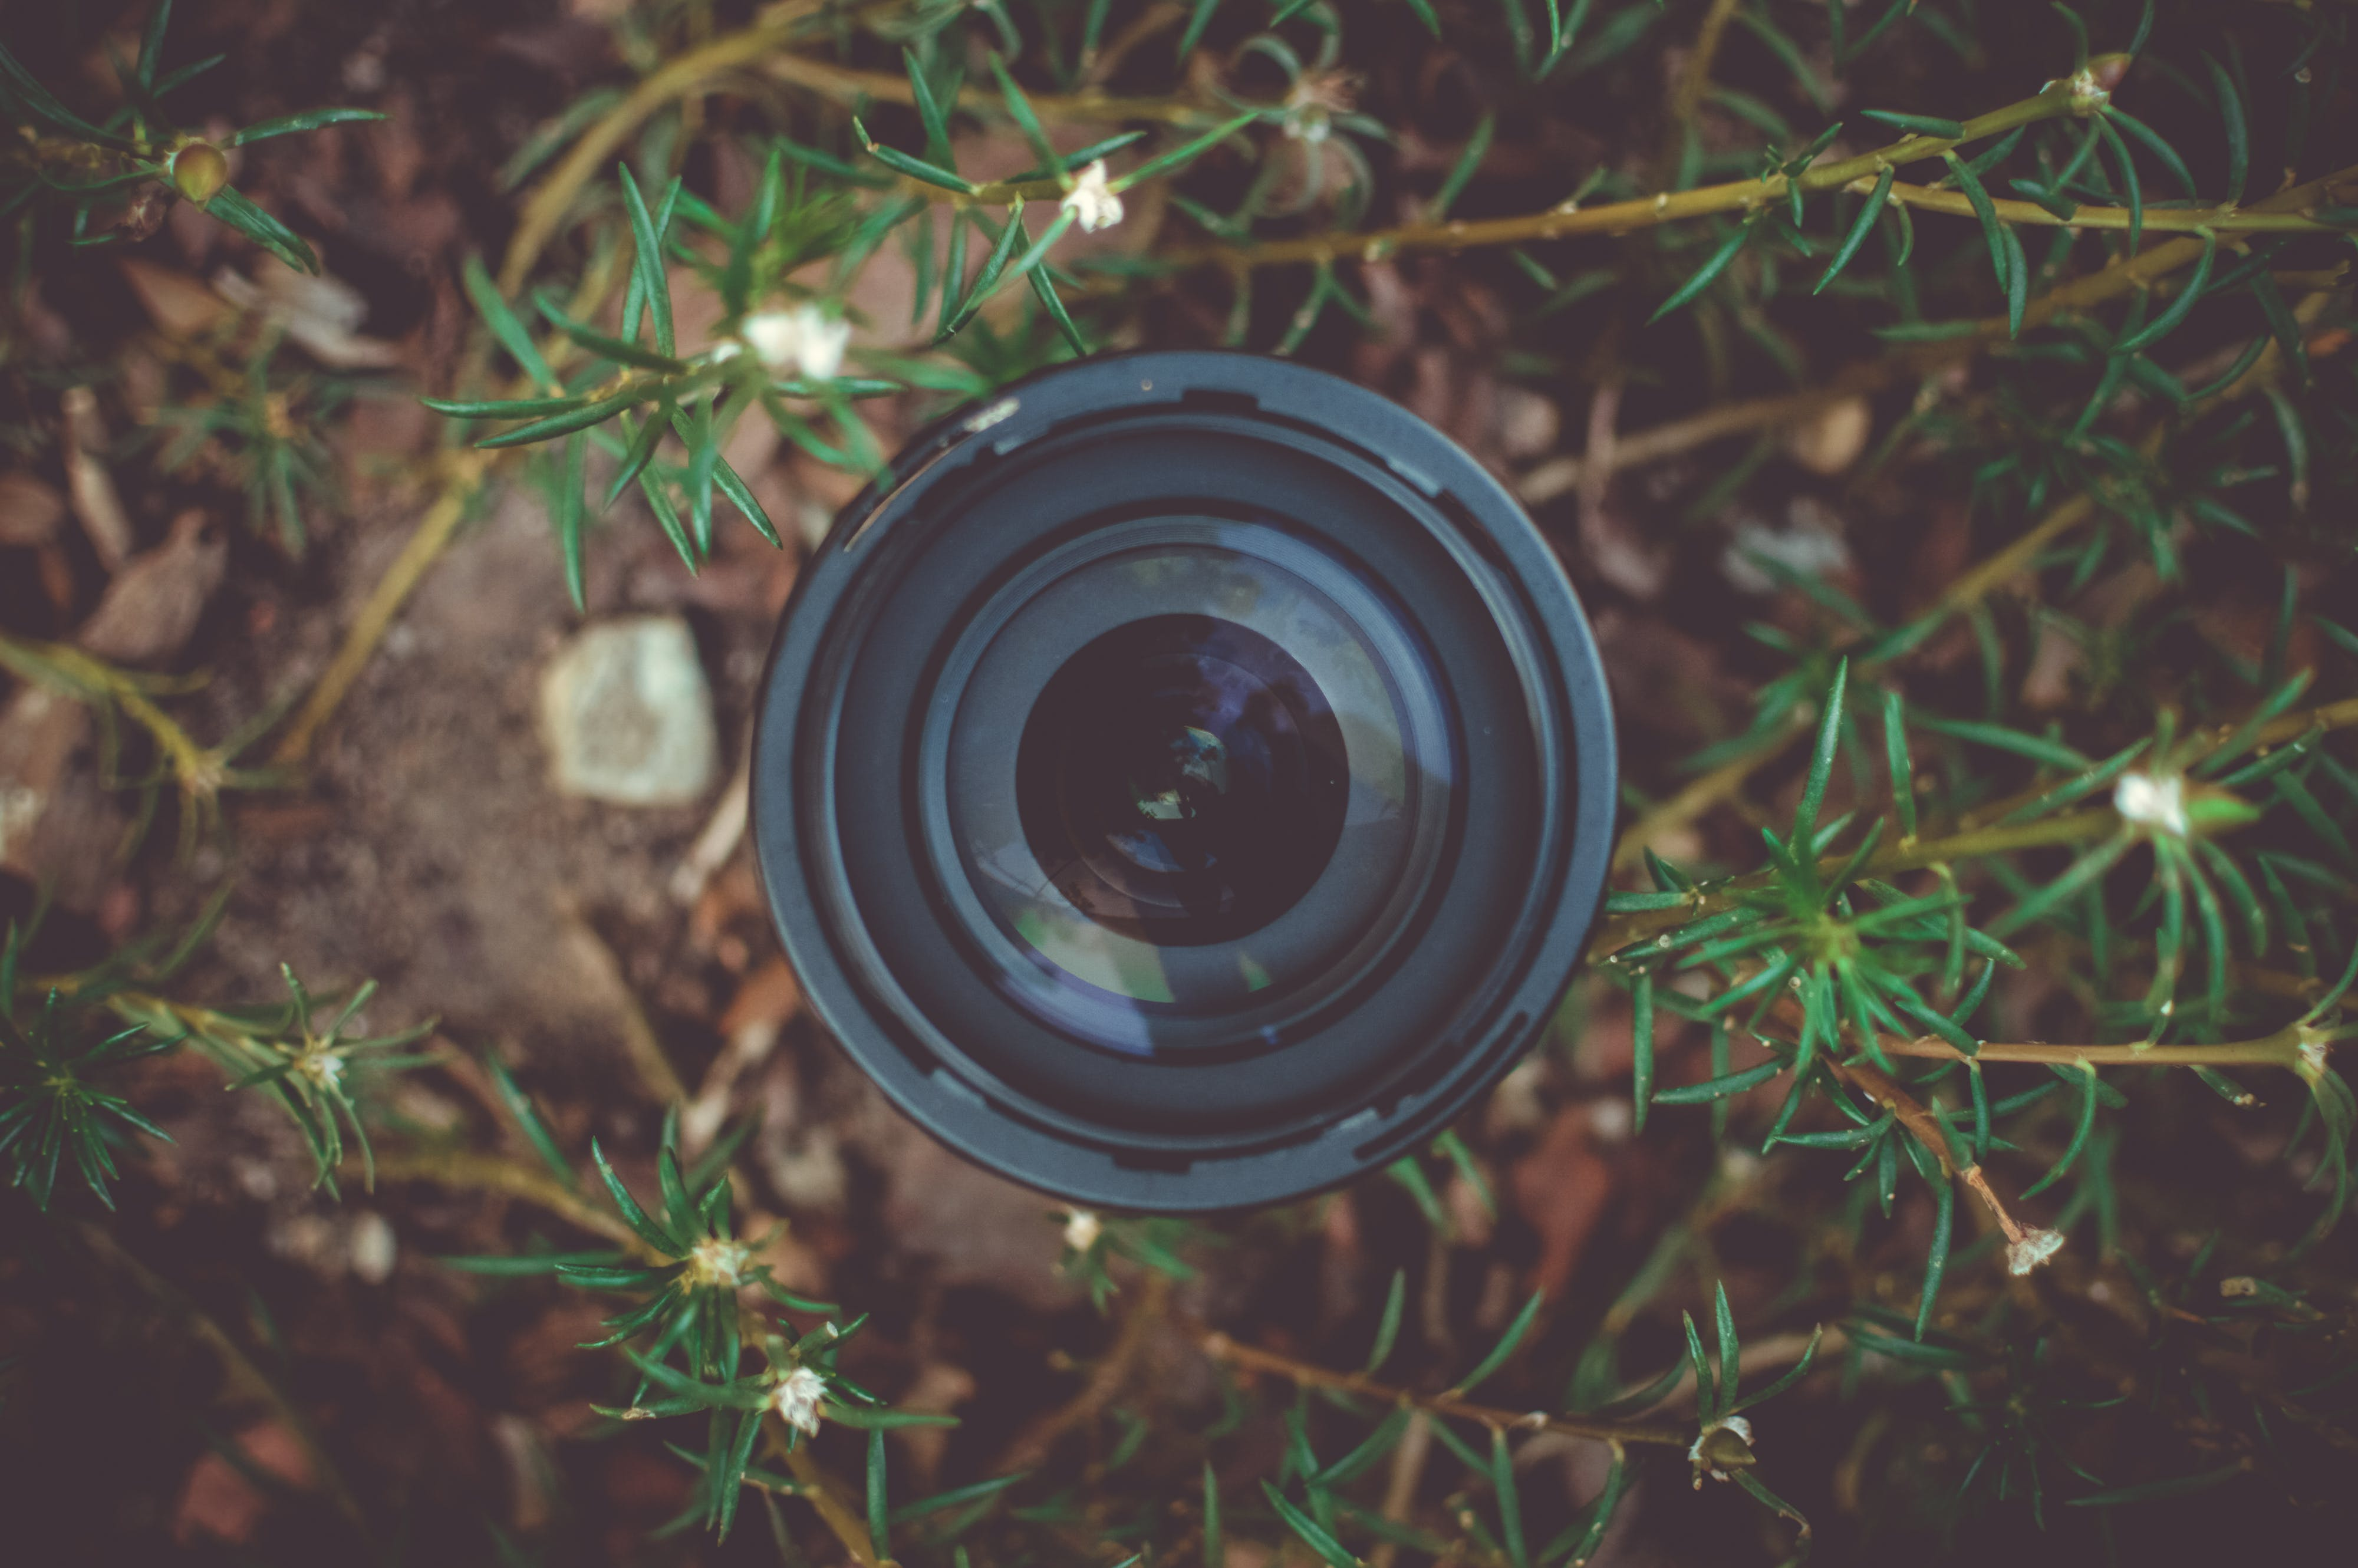 Black Dslr Camera Lens in Green Leaf Plant